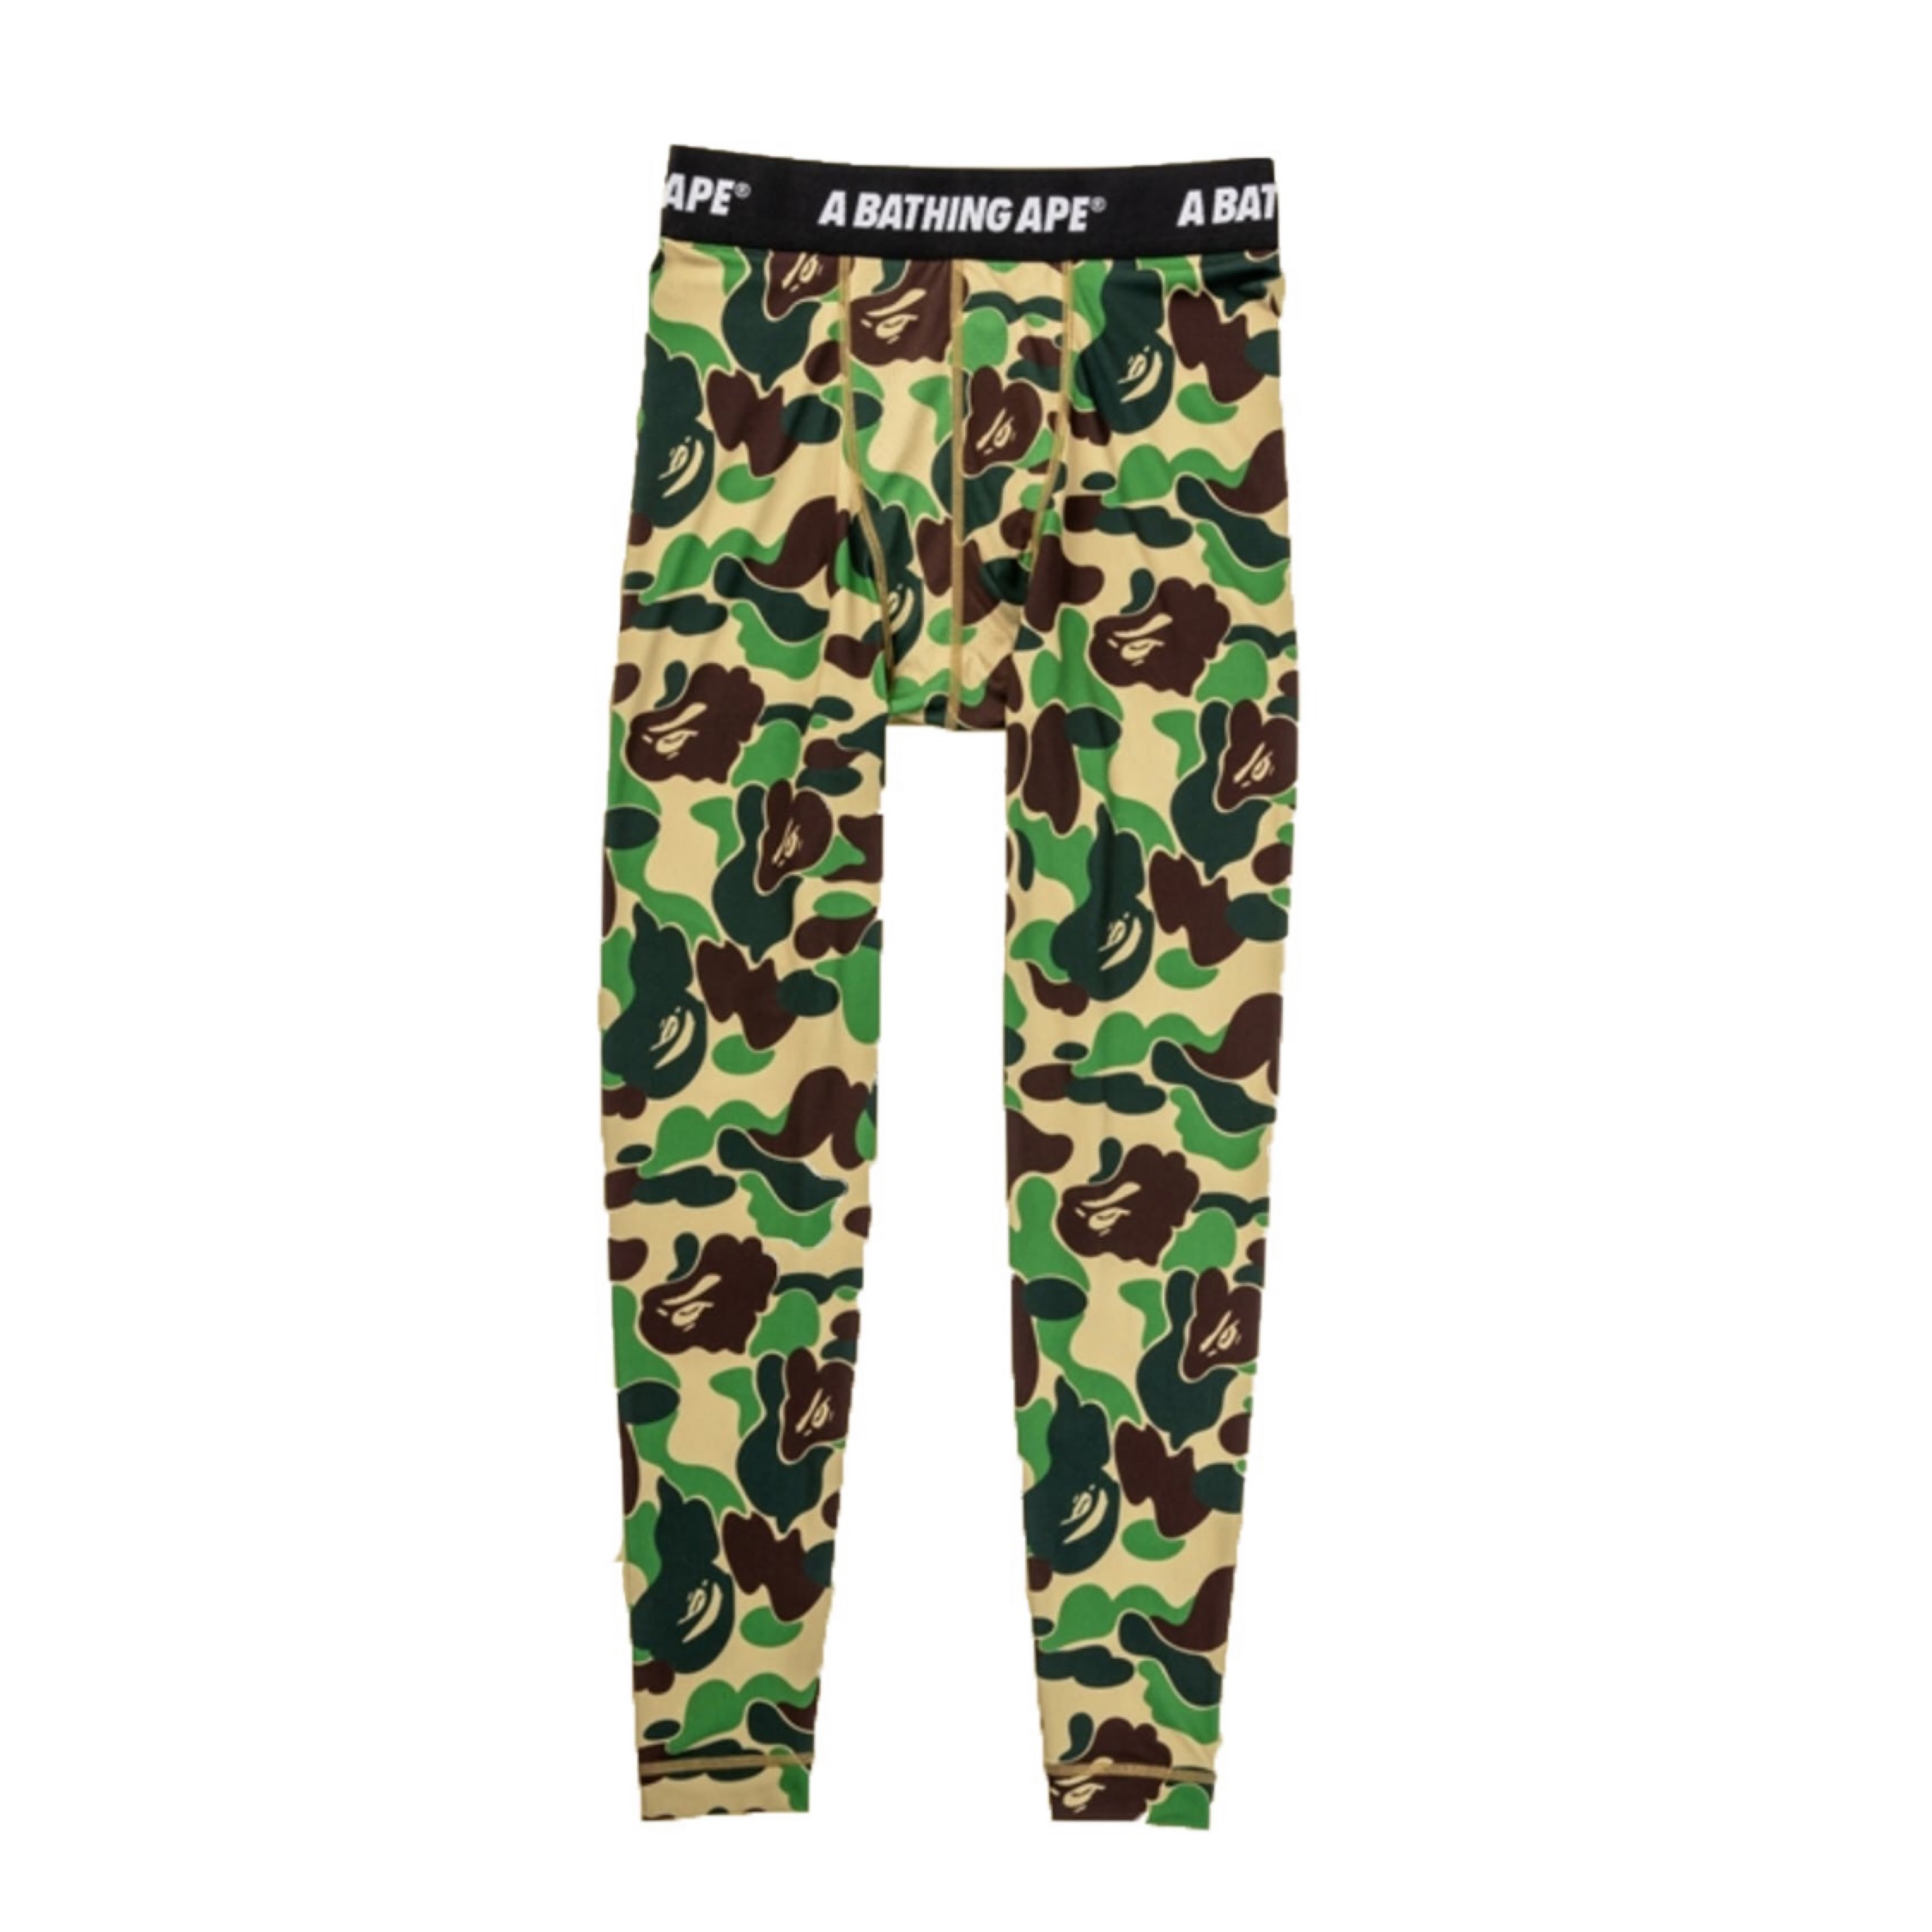 big sale a6005 26dc4 Bape X Adidas Tights Extra Small Dswt Xs